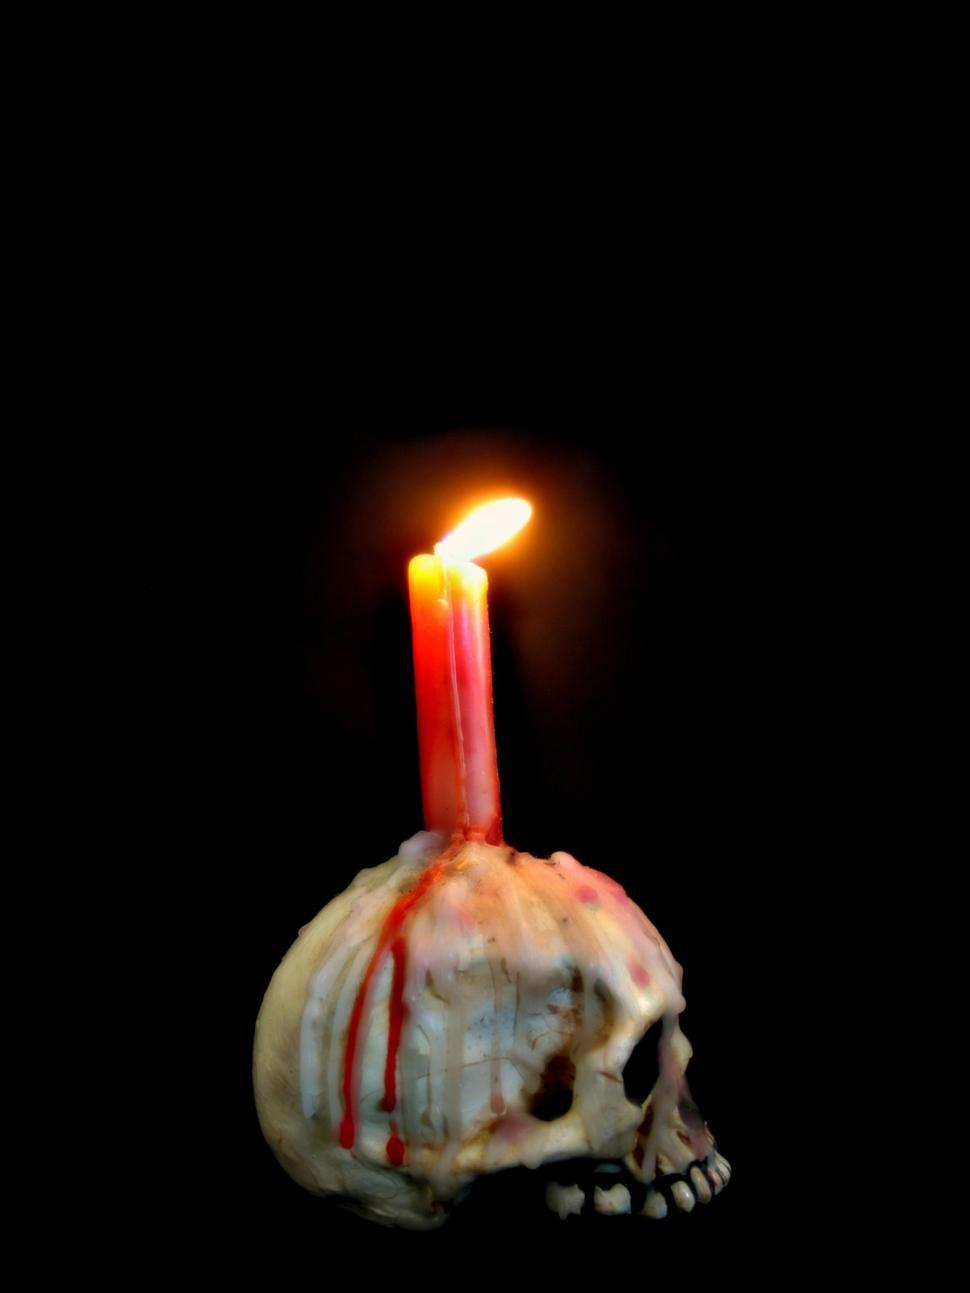 Download Free Stock Photo of Candle and Skull